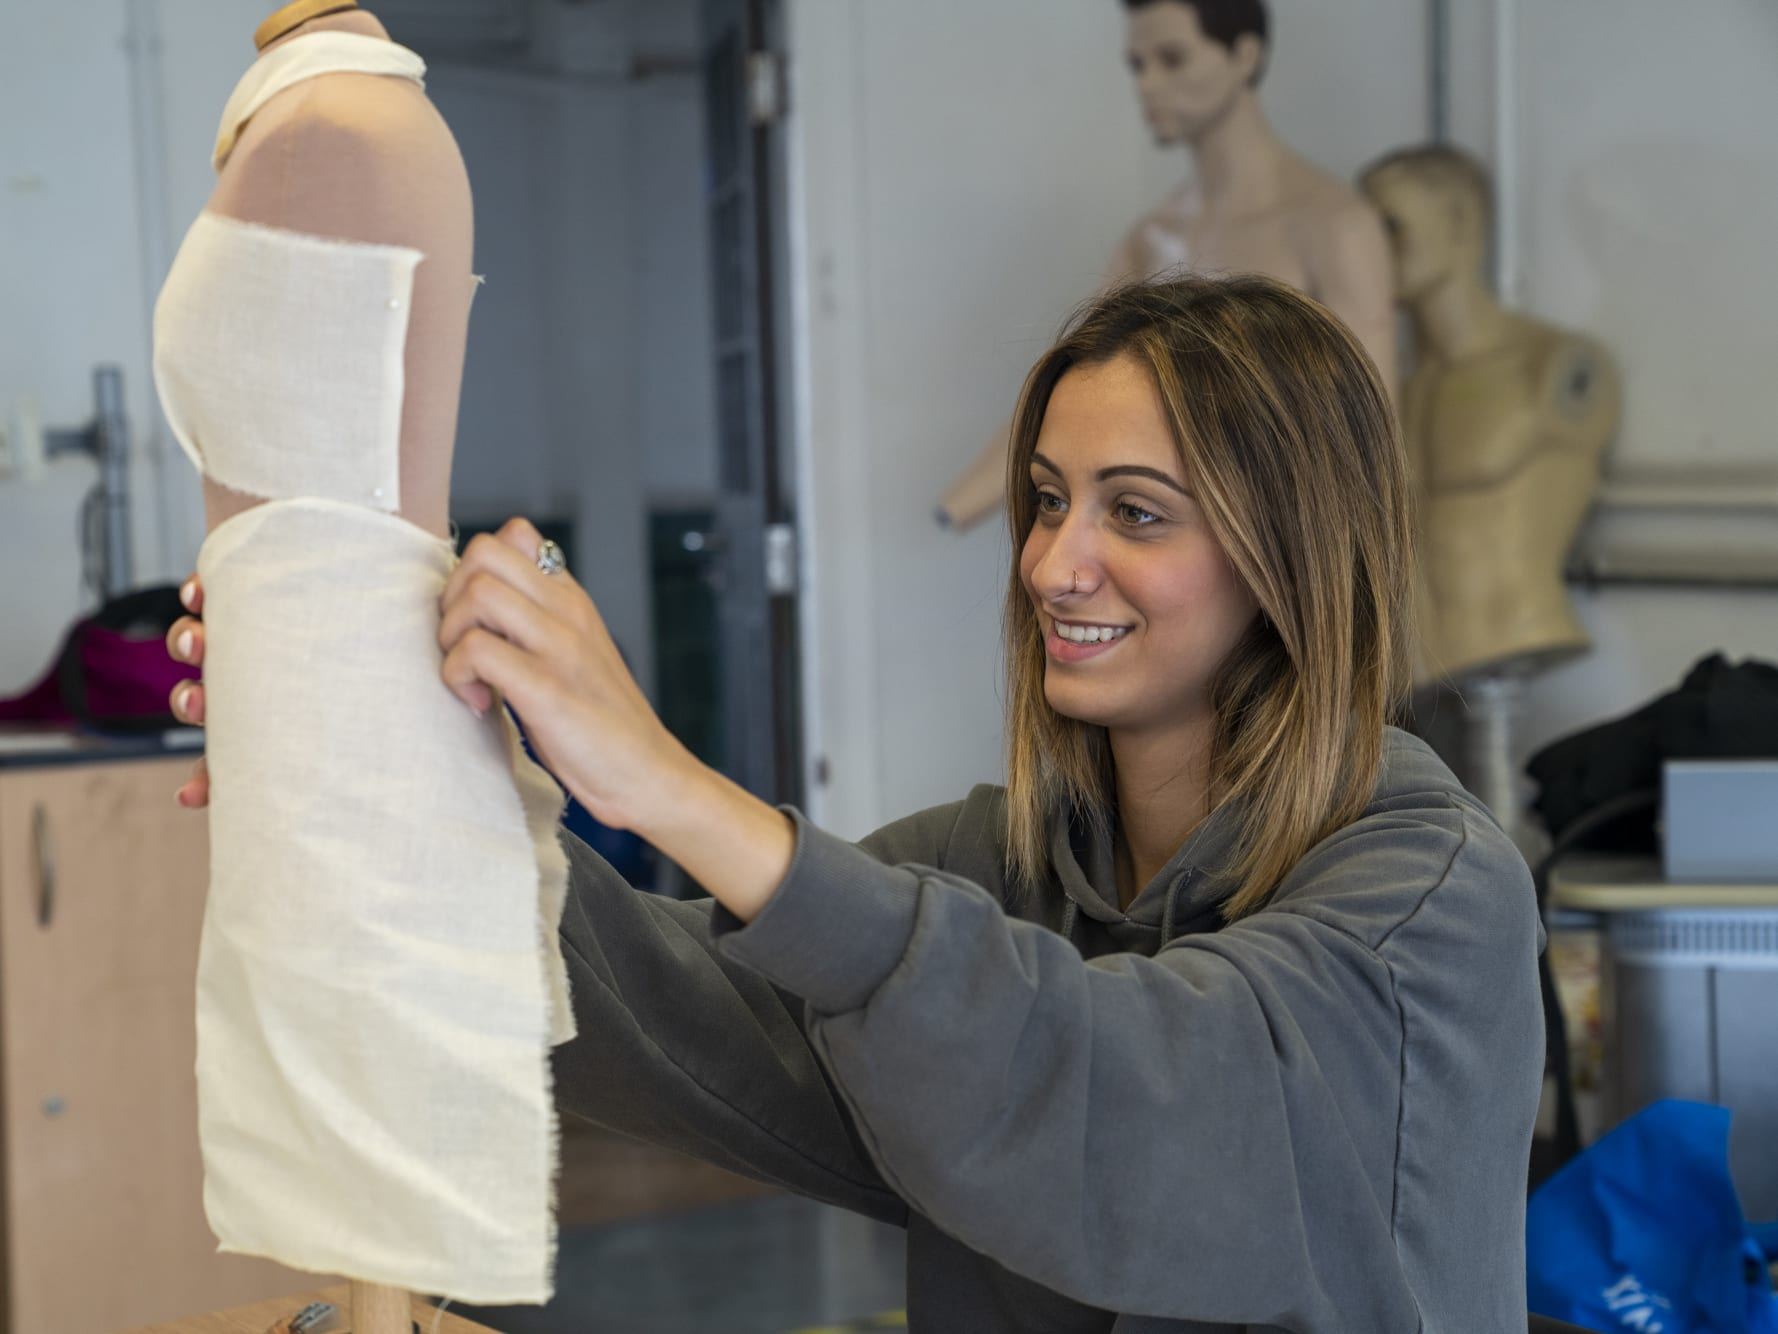 Student fitting design to mannequin